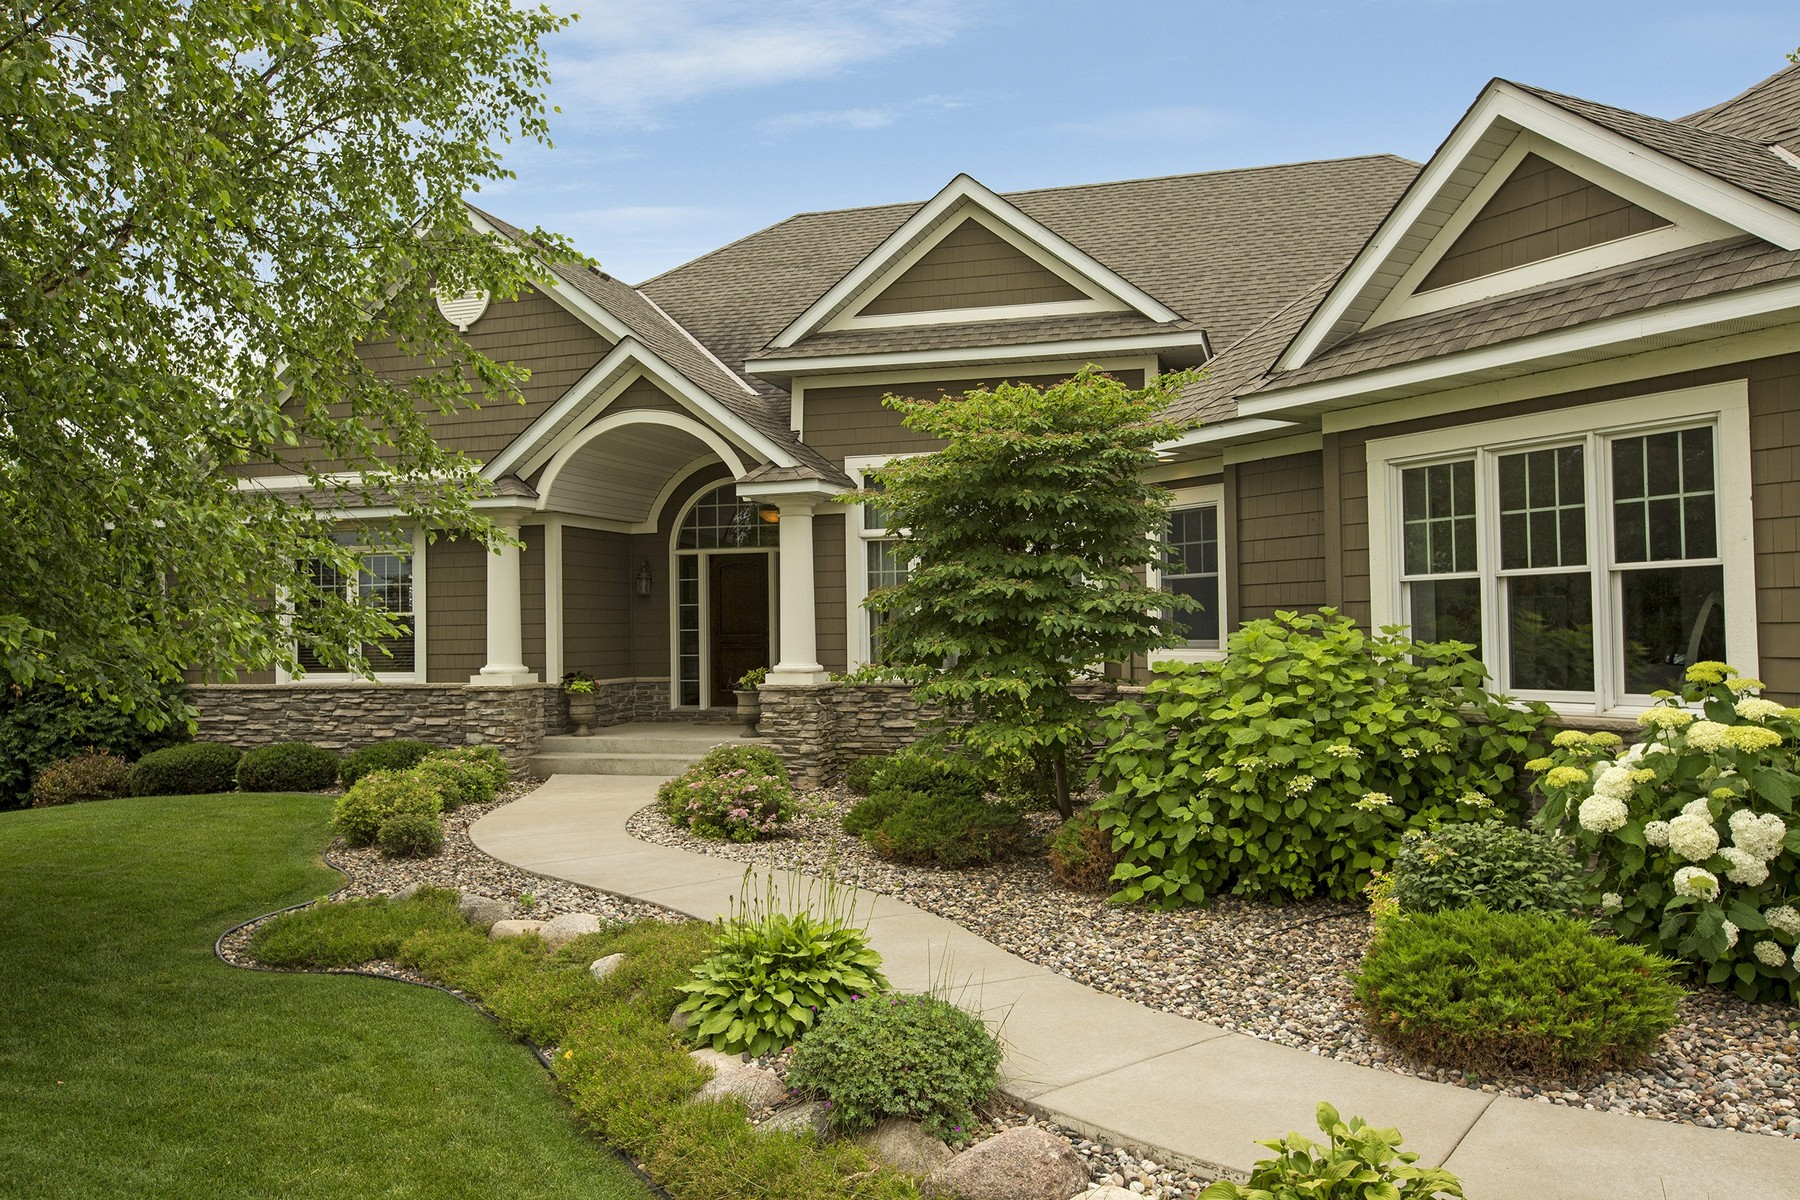 Single Family Home for Sale at 2924 Fairway Drive Chaska, Minnesota 55318 United States